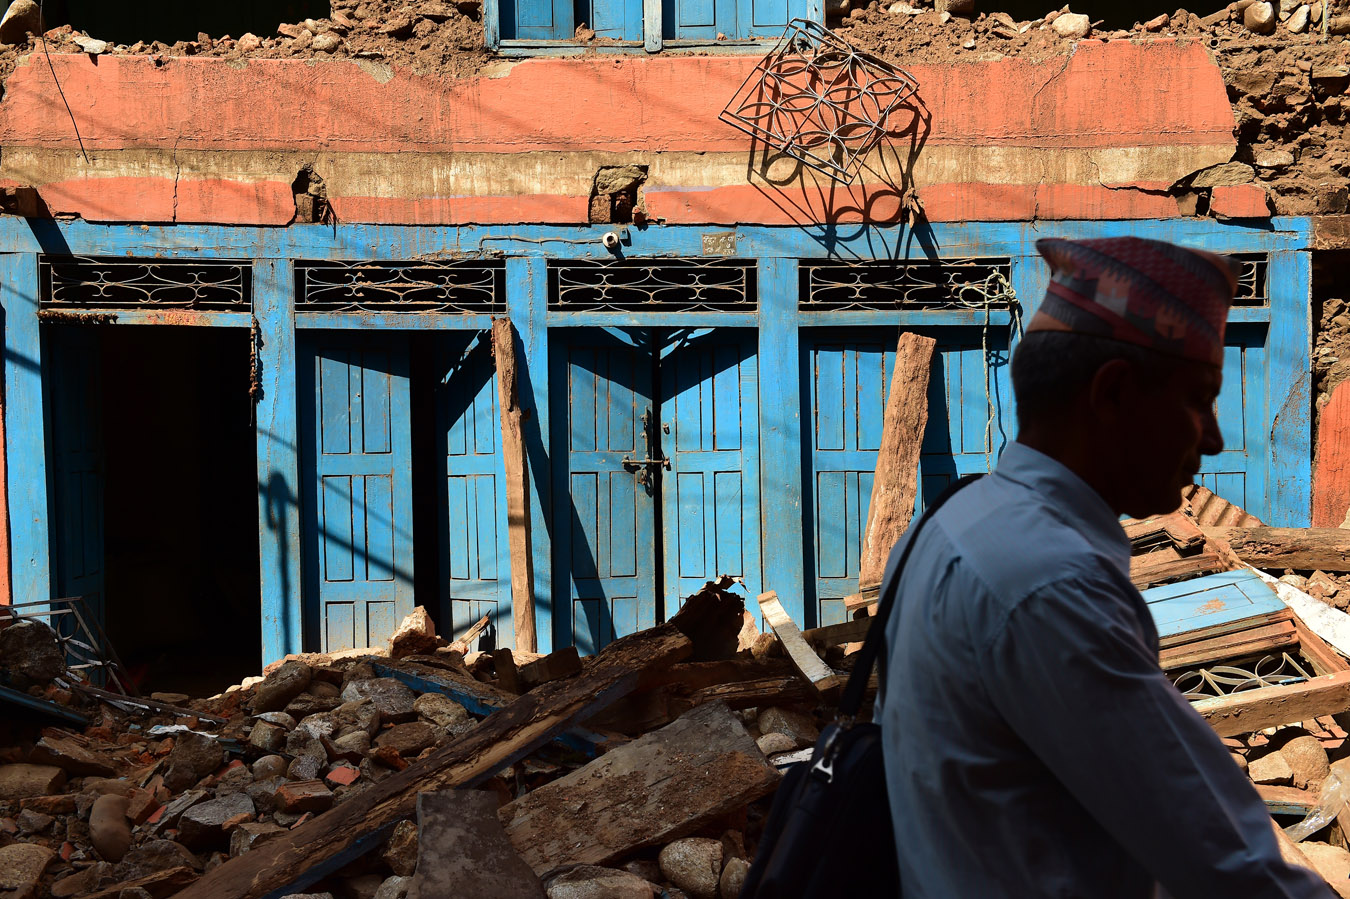 A man walks an earthquake damaged building on Sunday May 03, 2015 in Devighat, Nepal which is located in the Nuwakot District. A deadly earthquake in Nepal has killed thousands. (Photo by Matt McClain/ The Washington Post)